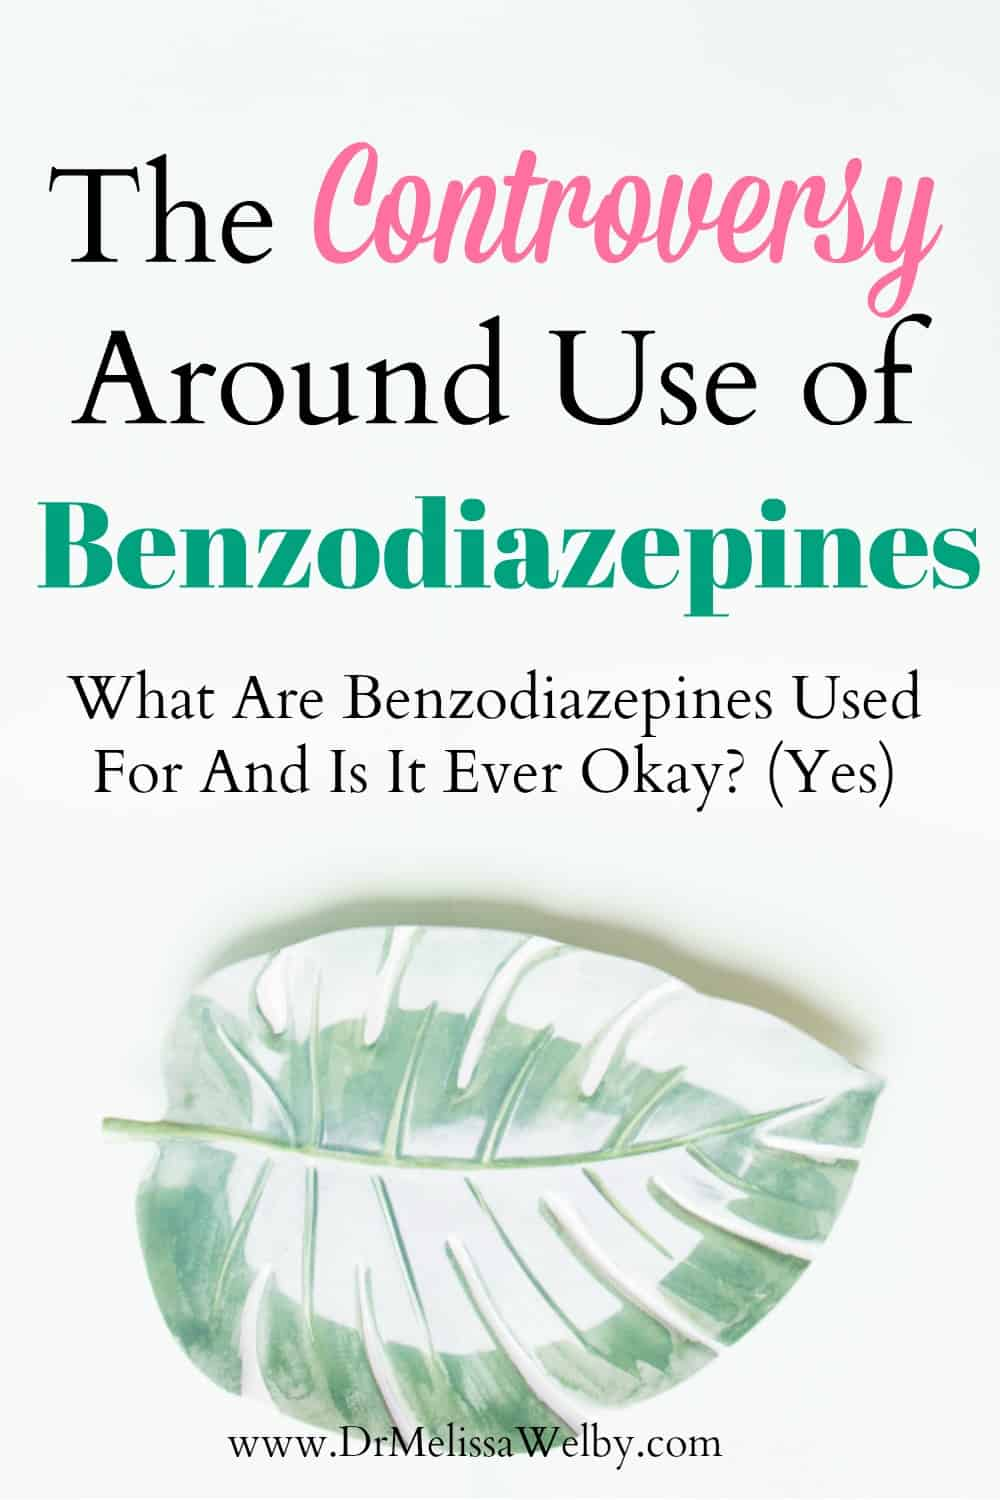 There is controversy around use of benzodiazepines but benzodiazepine medications are necessary and helpful sometimes...just not always. What is a benzodiazepine? What are benzodiazepines used for when they are helpful?